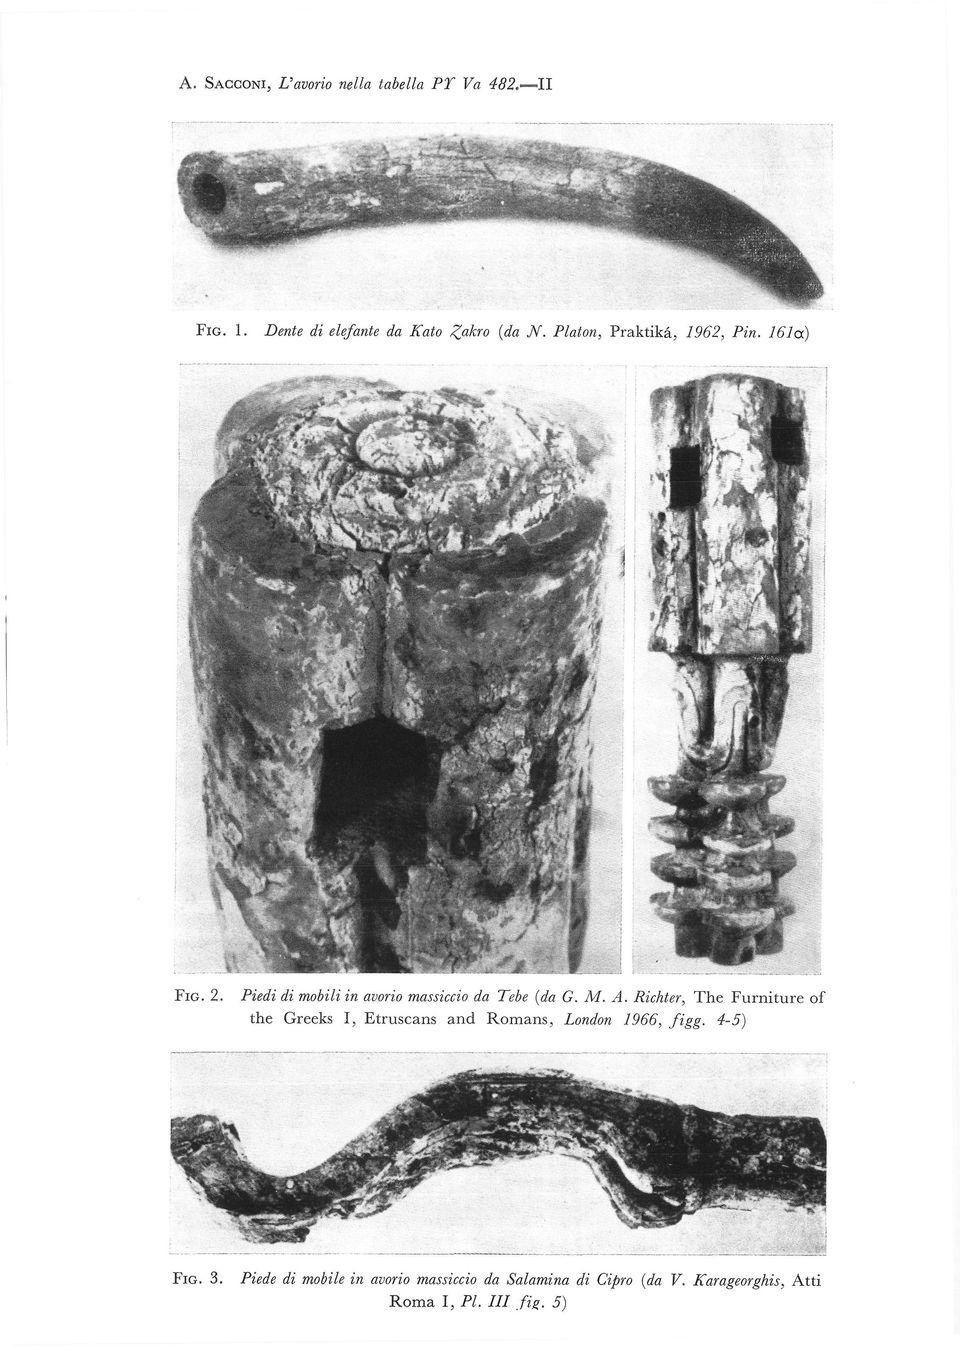 Richter, The Furniture of the Greeks I, Etruscans and Romans, London 1966, figg. 4-5) FIG. 3.